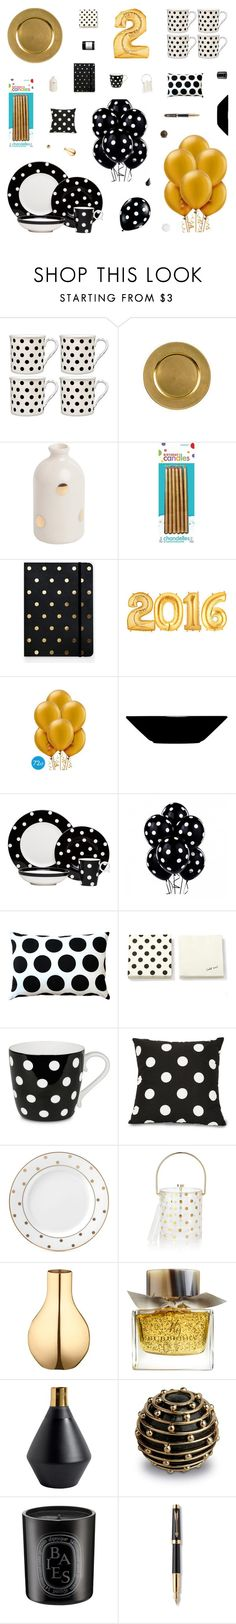 """""""2nd Birthday Party Decor"""" by belenloperfido ❤ liked on Polyvore featuring interior, interiors, interior design, home, home decor, interior decorating, Home Essentials, Sugar Paper, iittala and Red Vanilla"""